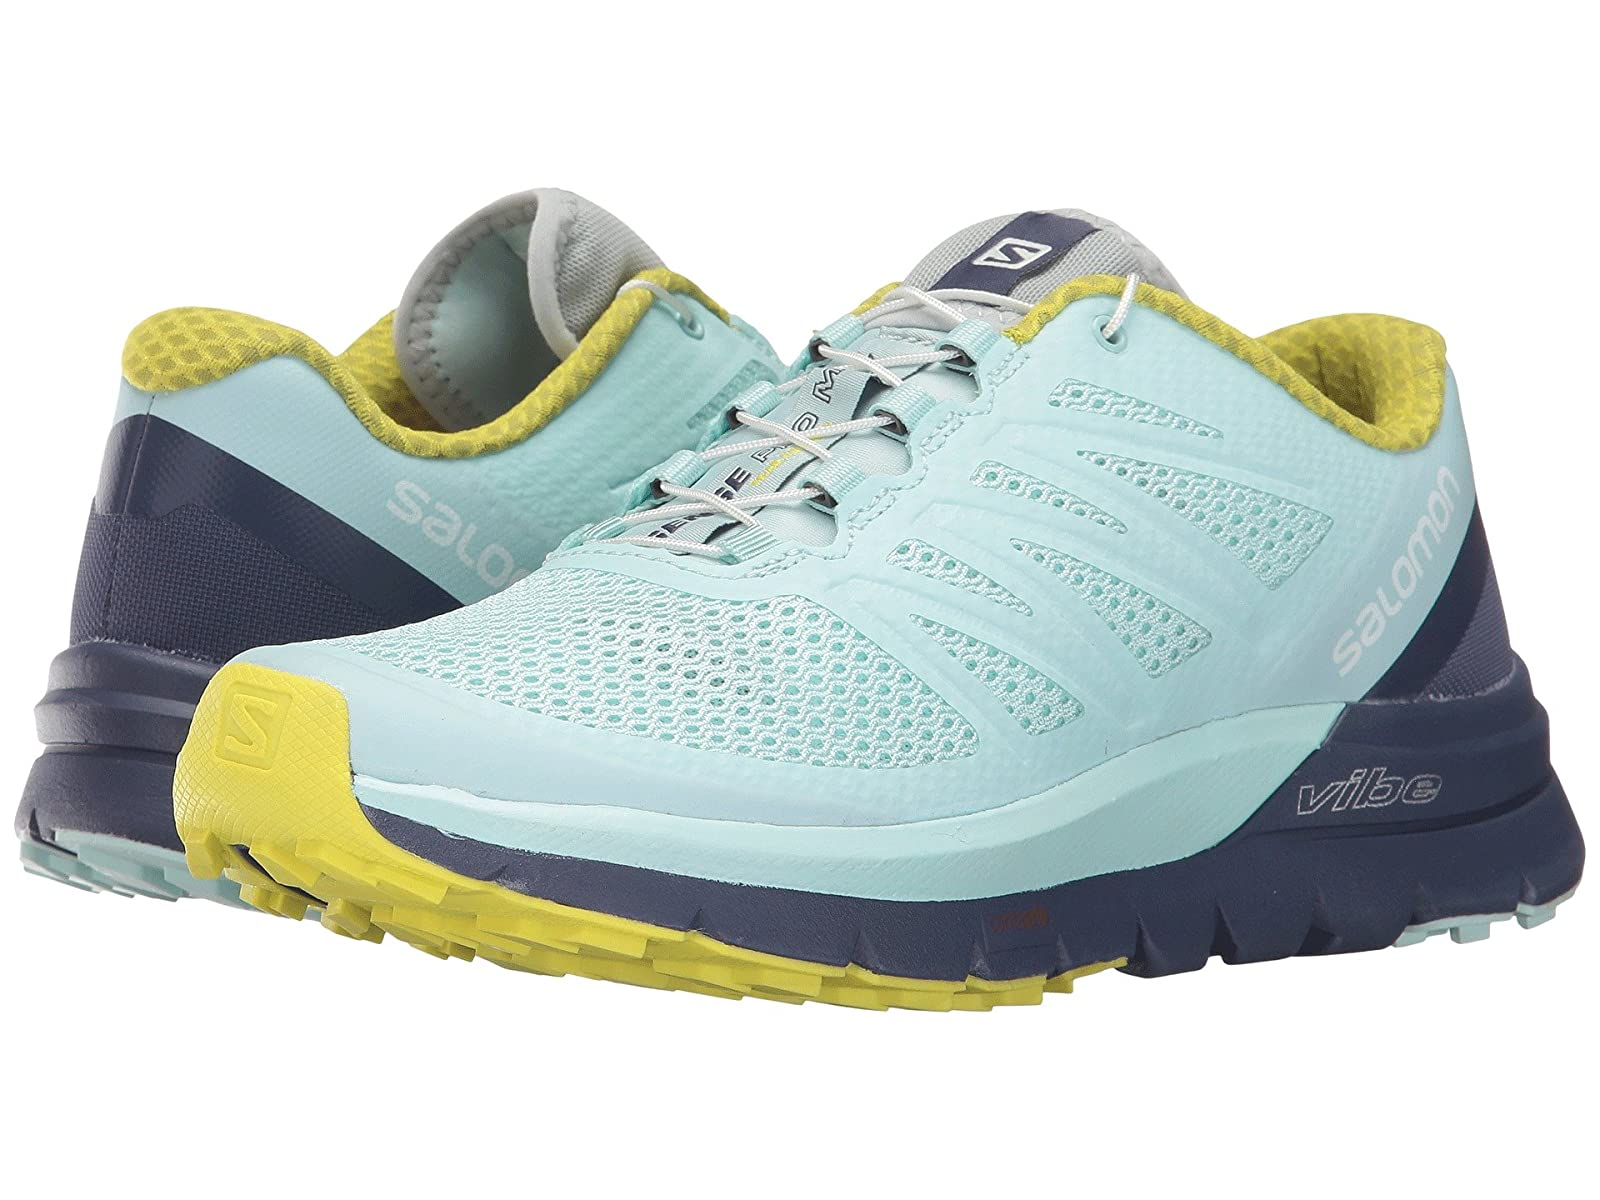 Salomon Sense Pro MaxCheap and distinctive eye-catching shoes